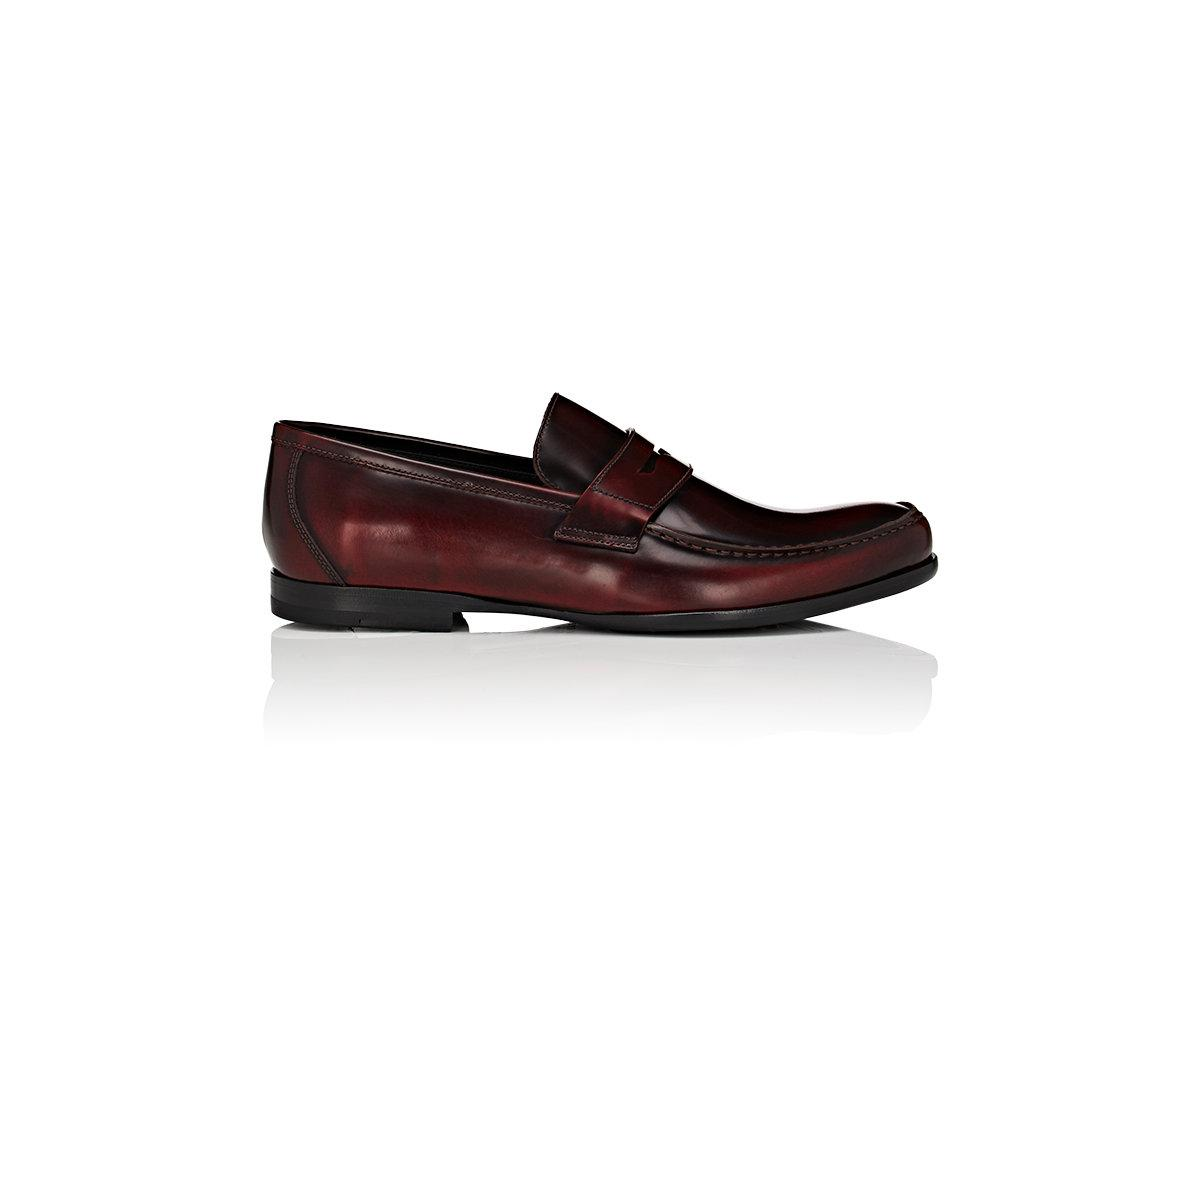 on sale 7b02a bb210 harrys-of-london-WINE-Alec-Spazzolato-Leather-Venetian-Loafers.jpeg